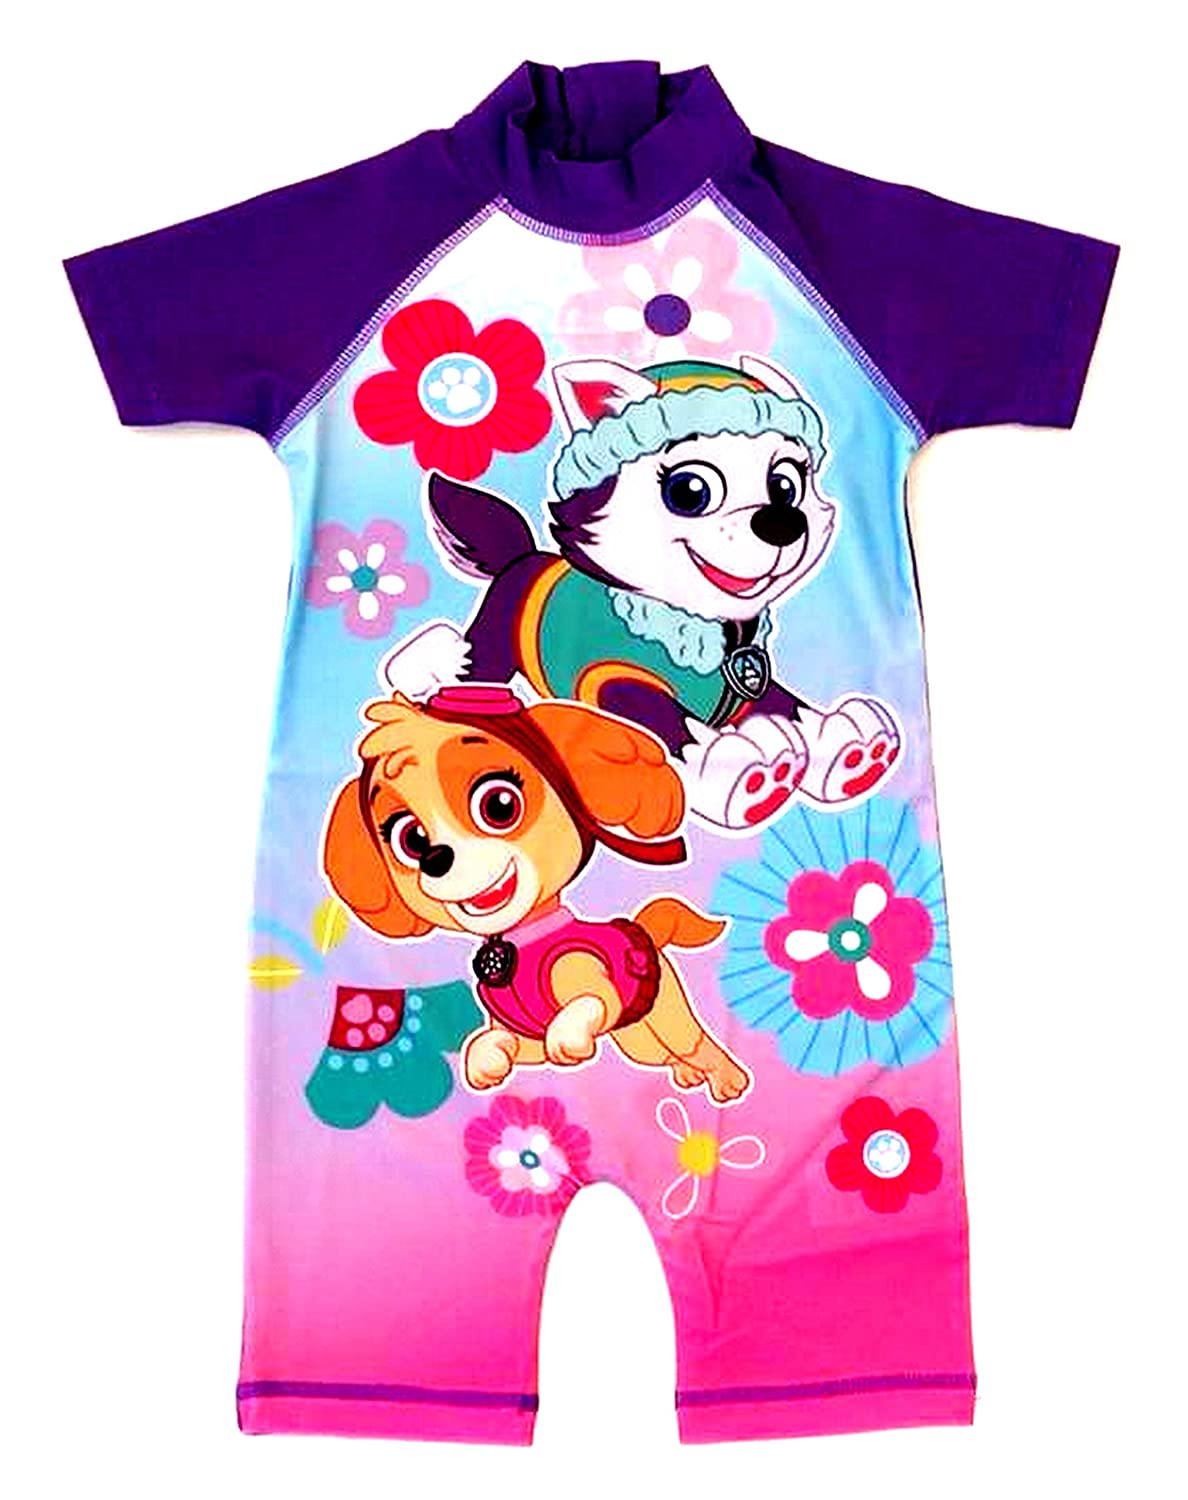 PAW Patrol surf Suit, Swim Suit, Swimming Costume - Ages 18/24mths, 2/3, 3/4, 4/5yrs